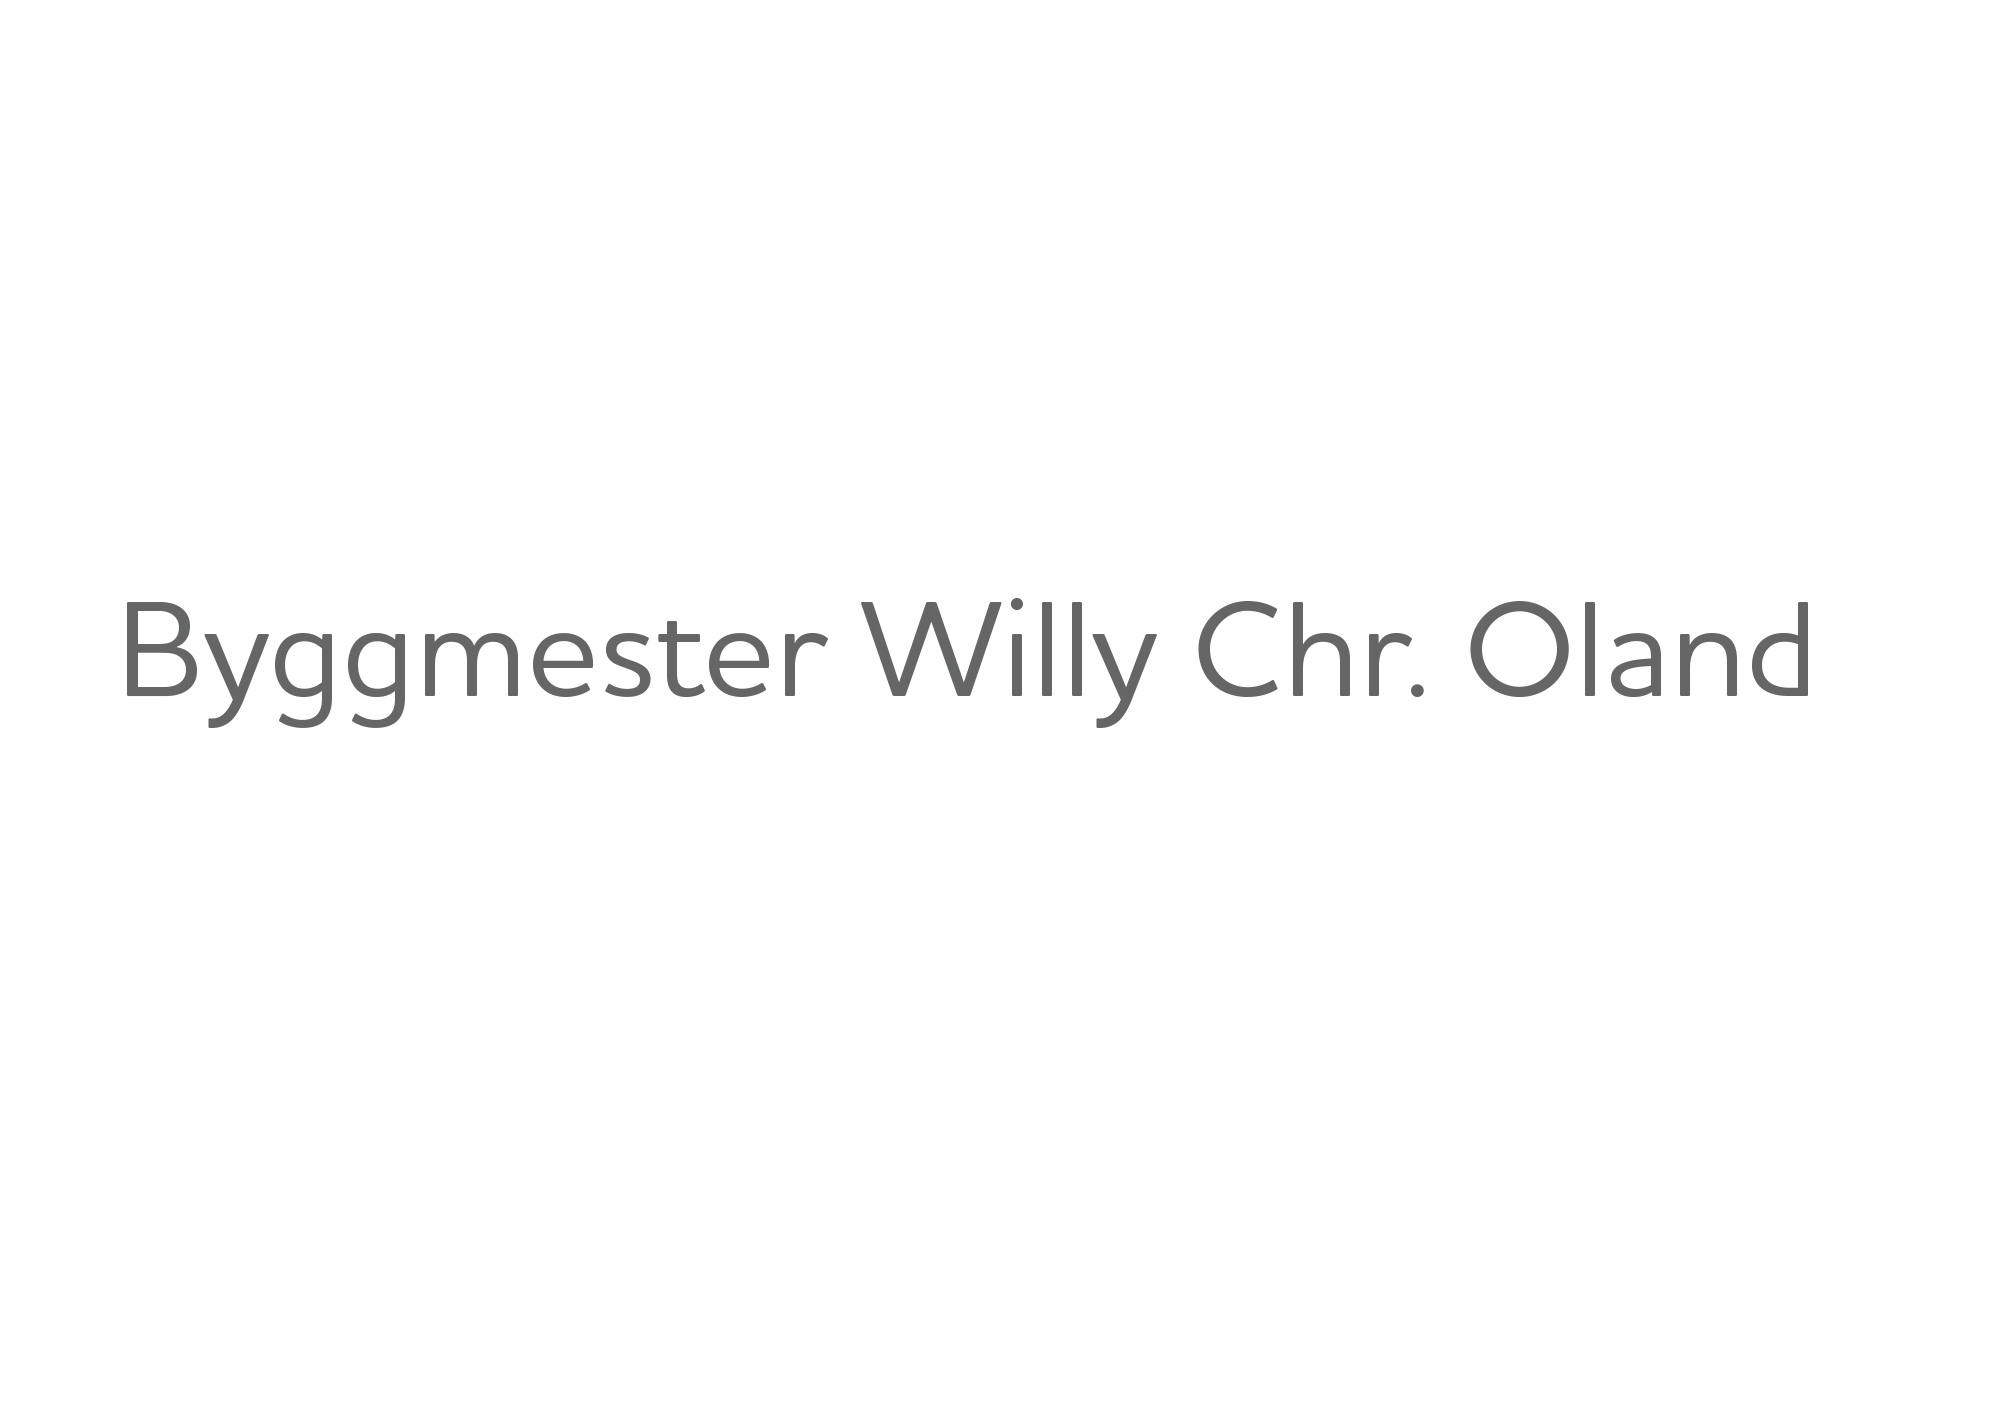 Byggmester Willy Chr. Oland